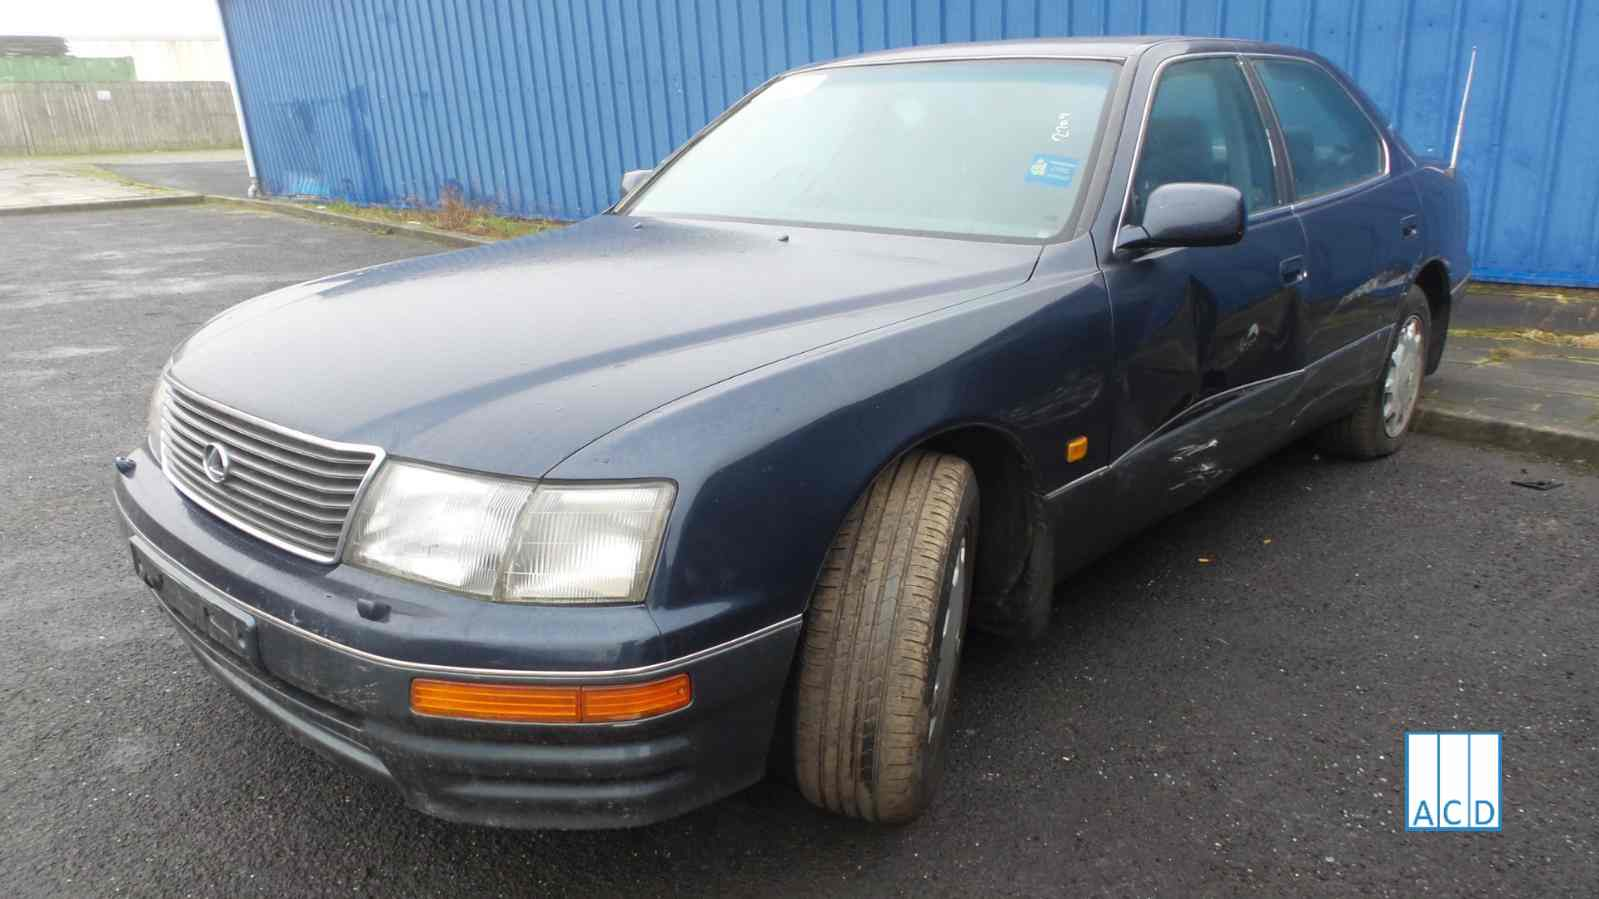 Lexus LS400 4.0L Petrol 4-speed automatic 1996 #2709 01